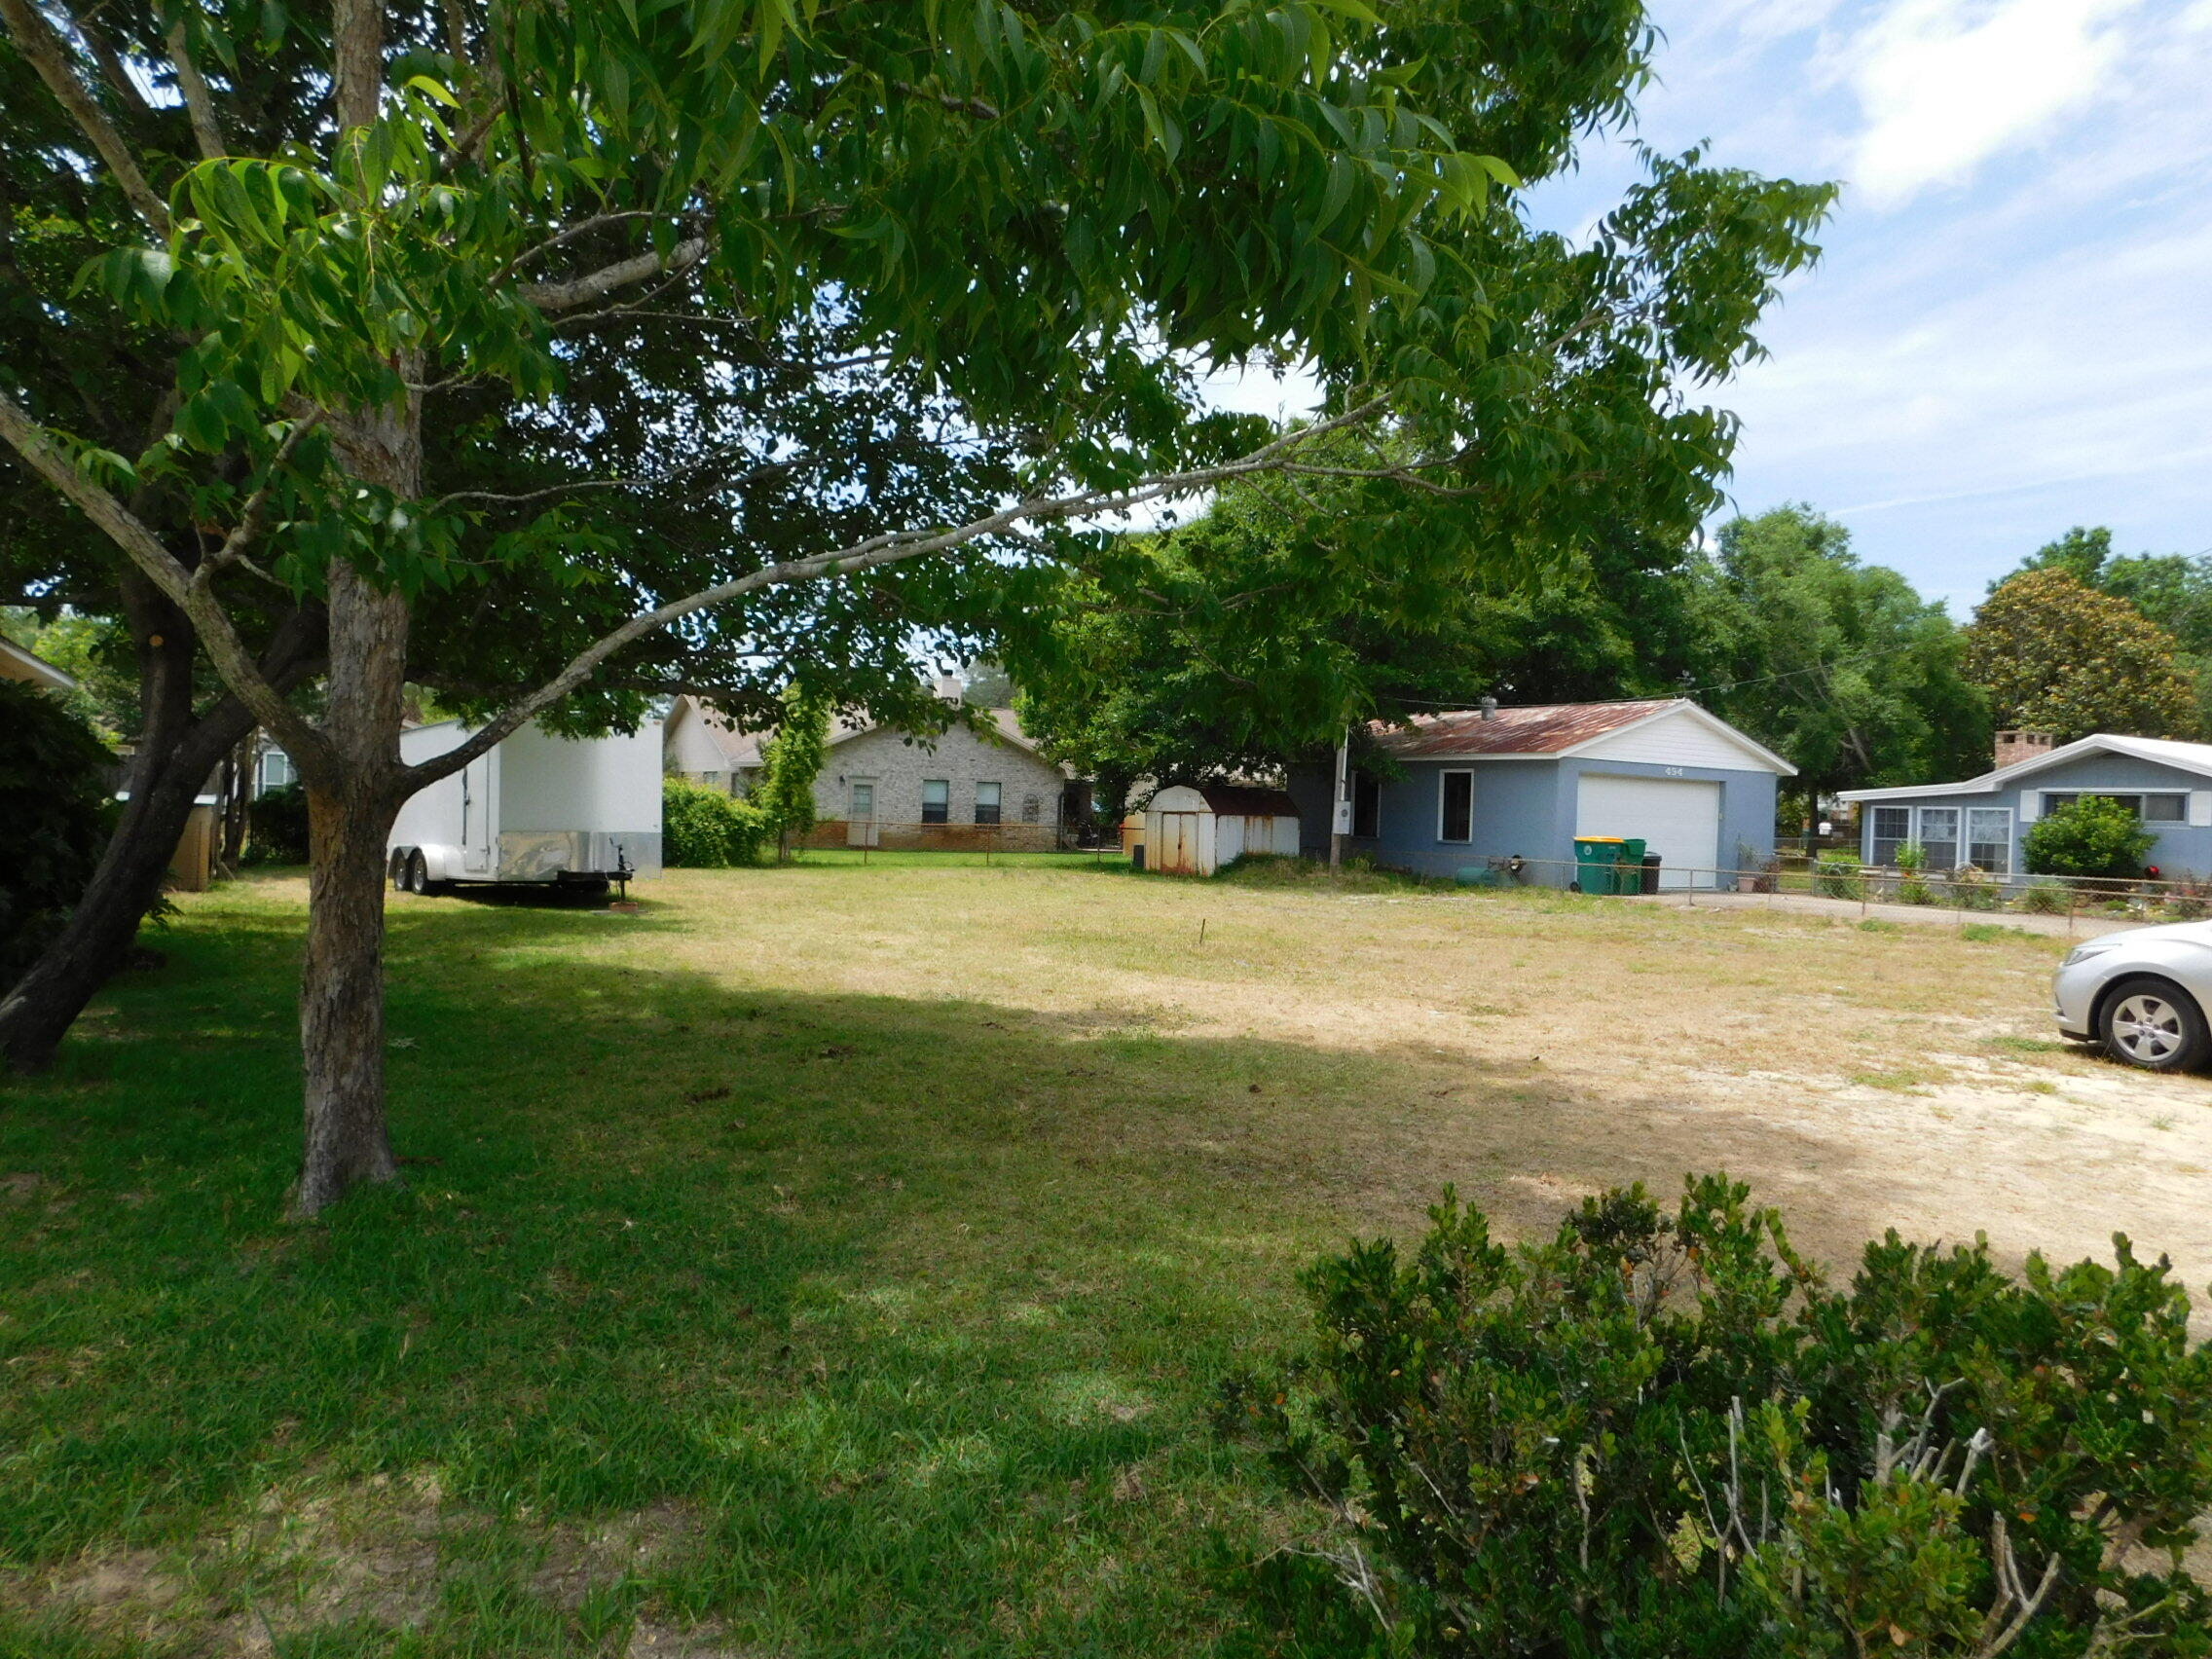 Flat lot ready to build your custom home on.  Tap fees have been paid and property already has Water, sewer and electric on the property. This lot was split off of the home to the left of it.  Please see new attached survey.